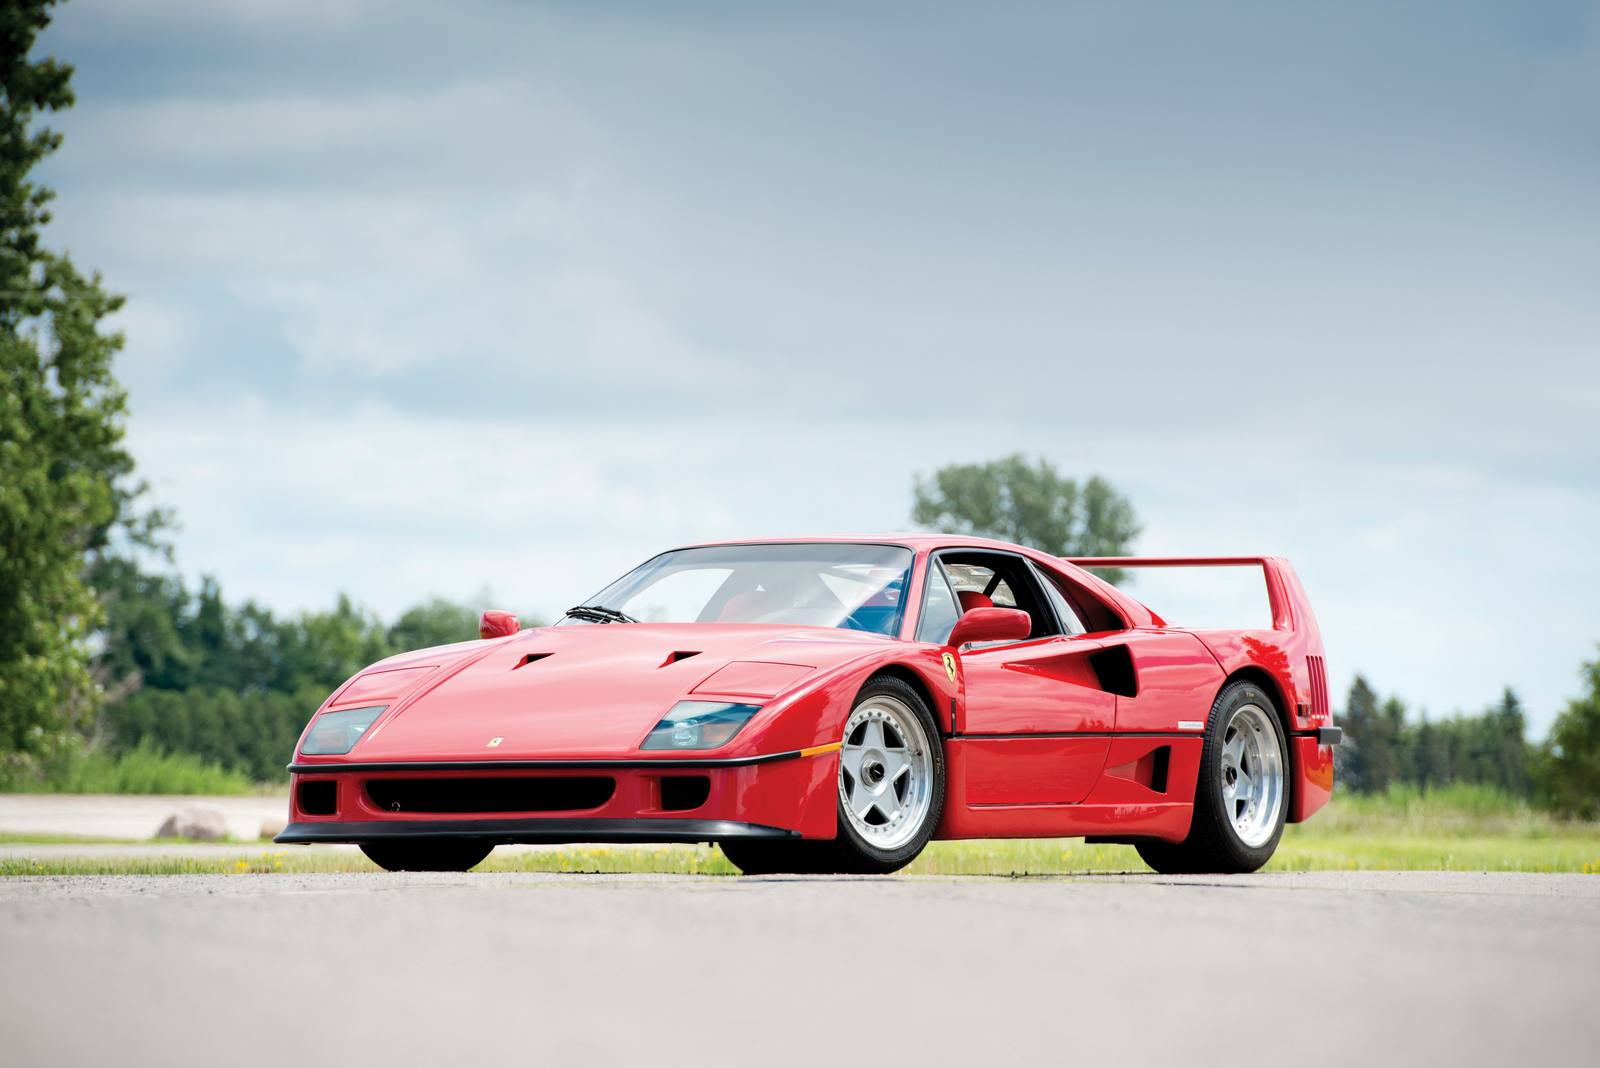 rod stewart 39 s former ferrari f40 heading to auction gtspirit. Black Bedroom Furniture Sets. Home Design Ideas